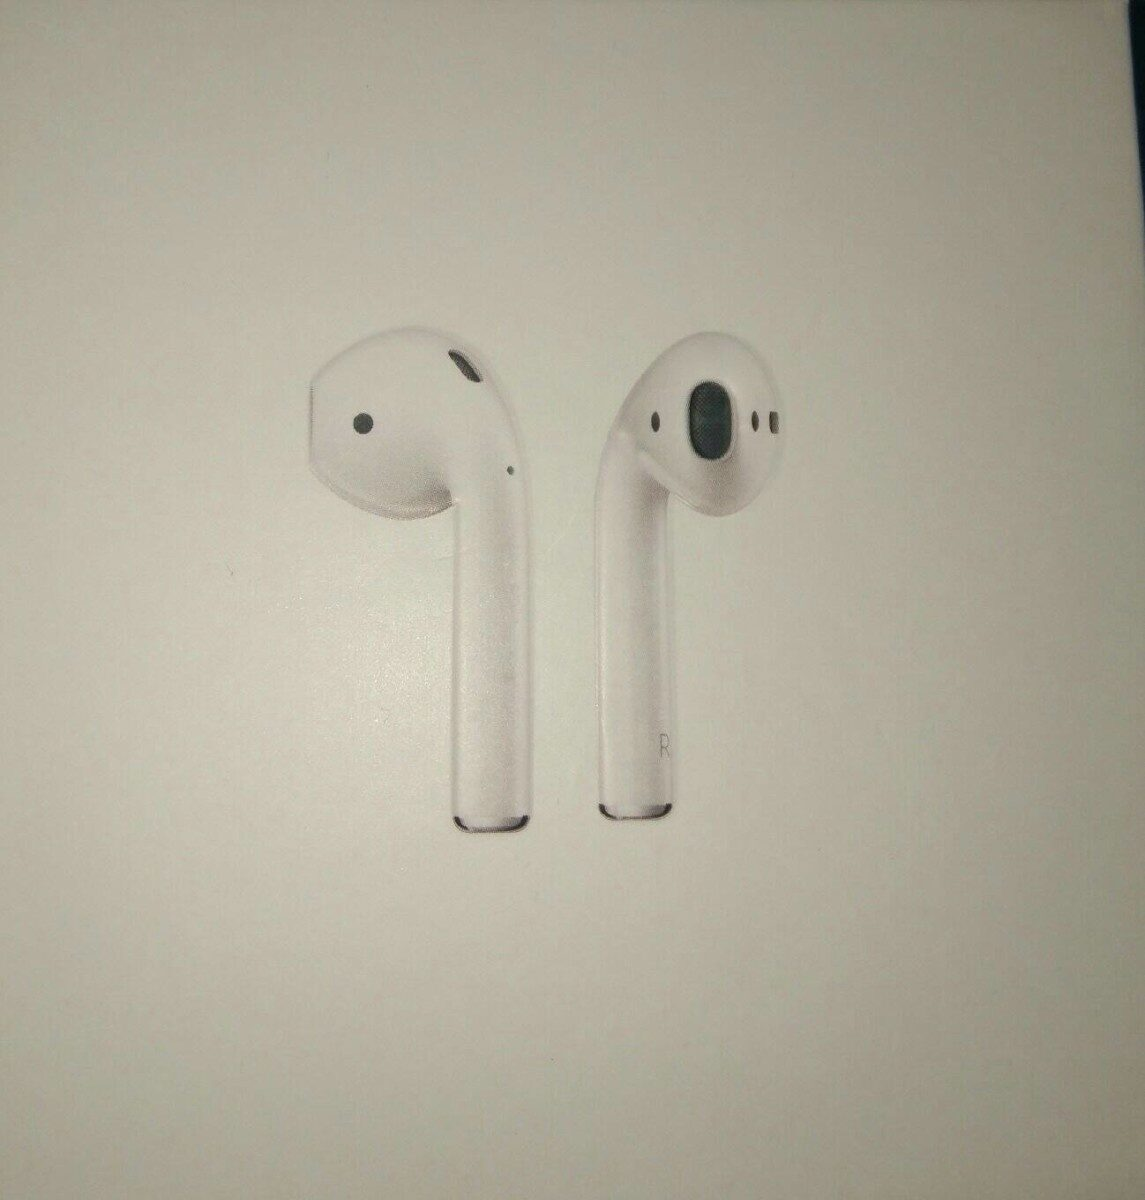 Airpods 2 - Product - fr